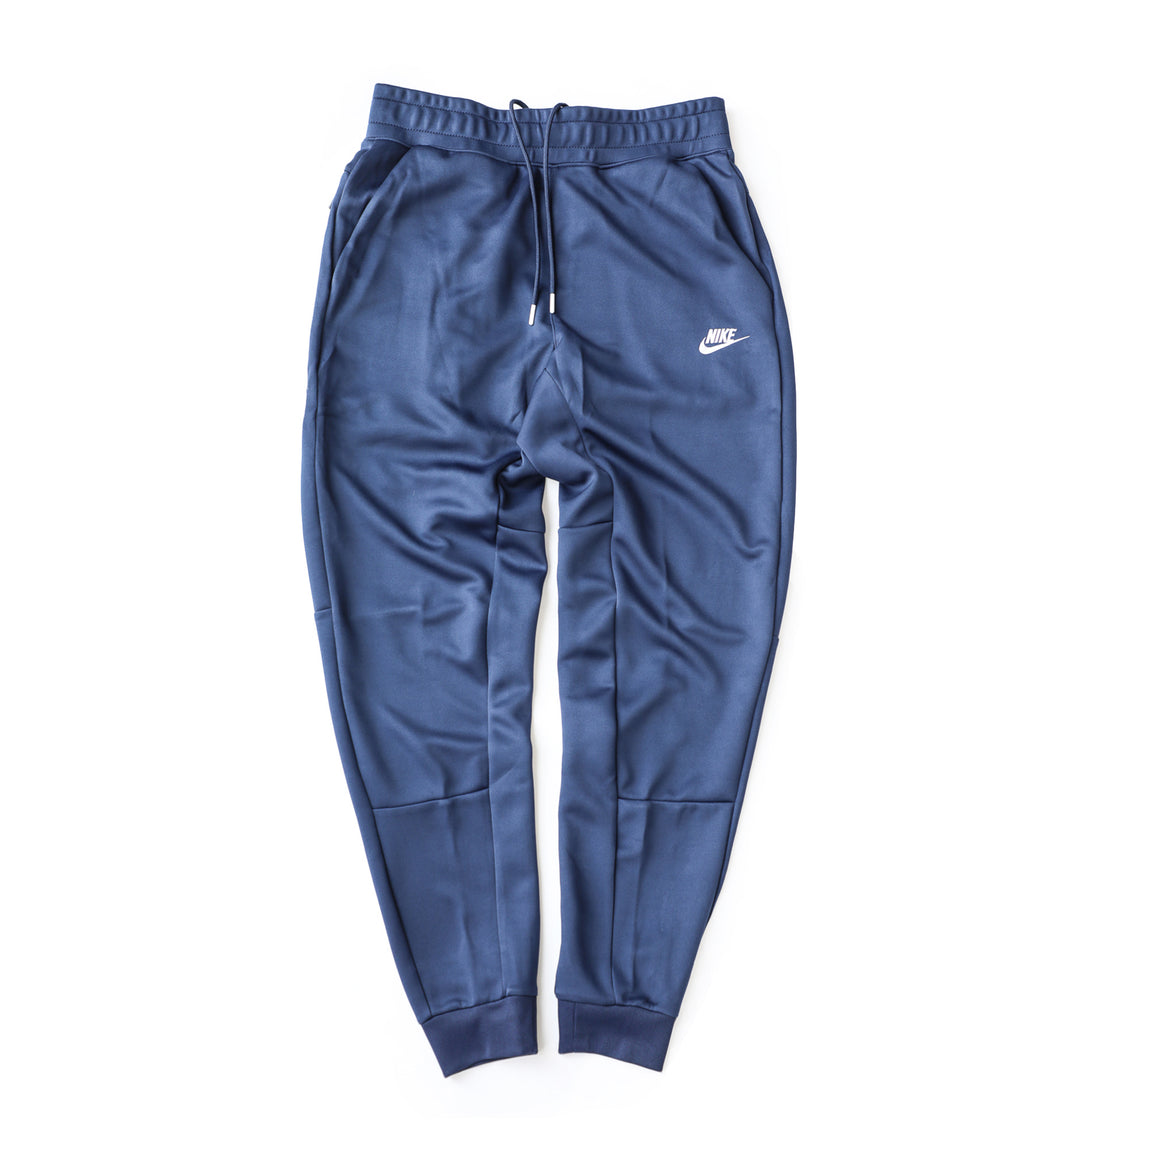 Nike Sportswear Tribute Pants (Midnight Navy/White) - Nike Sportswear Tribute Pants (Midnight Navy/White) -